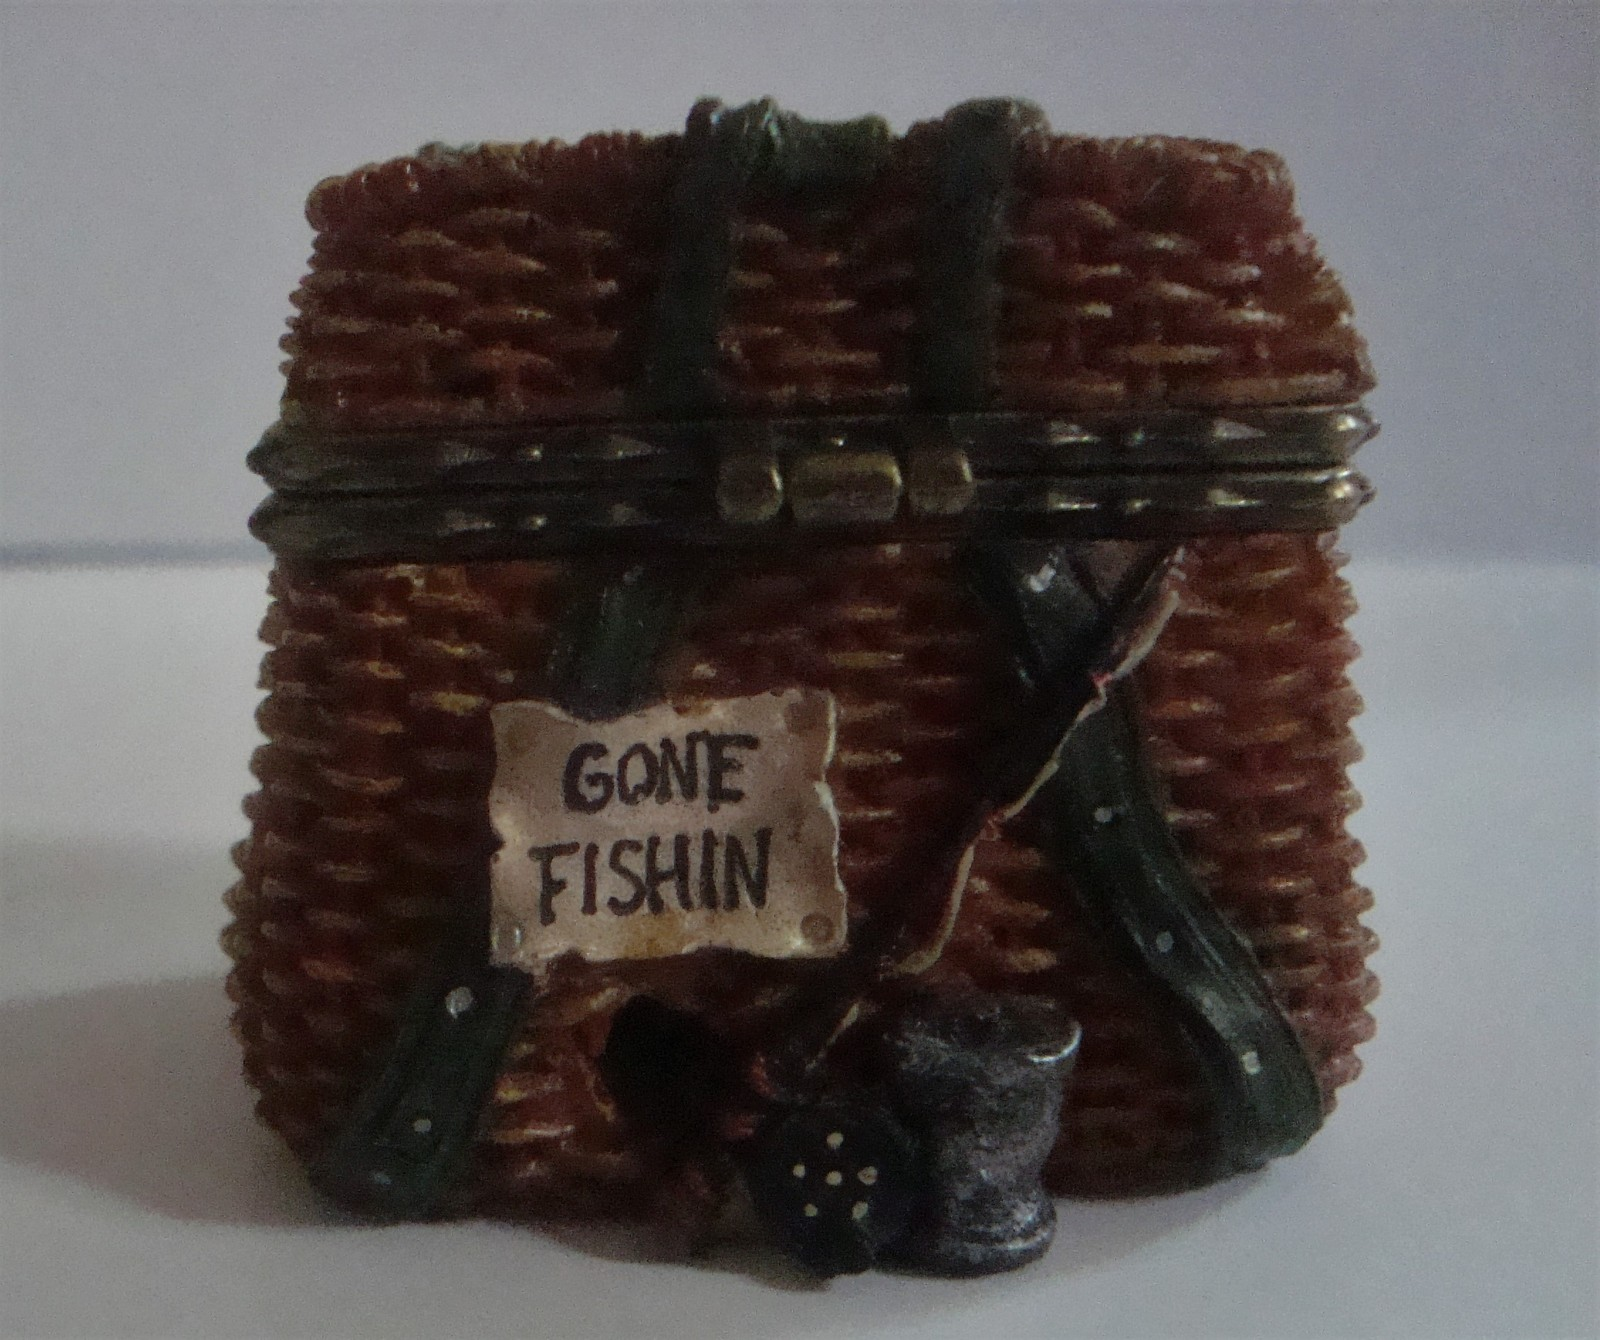 Boyd's Bears Uncle Bean's Treasure Box Opie's Creel Basket with Minnow McNibble